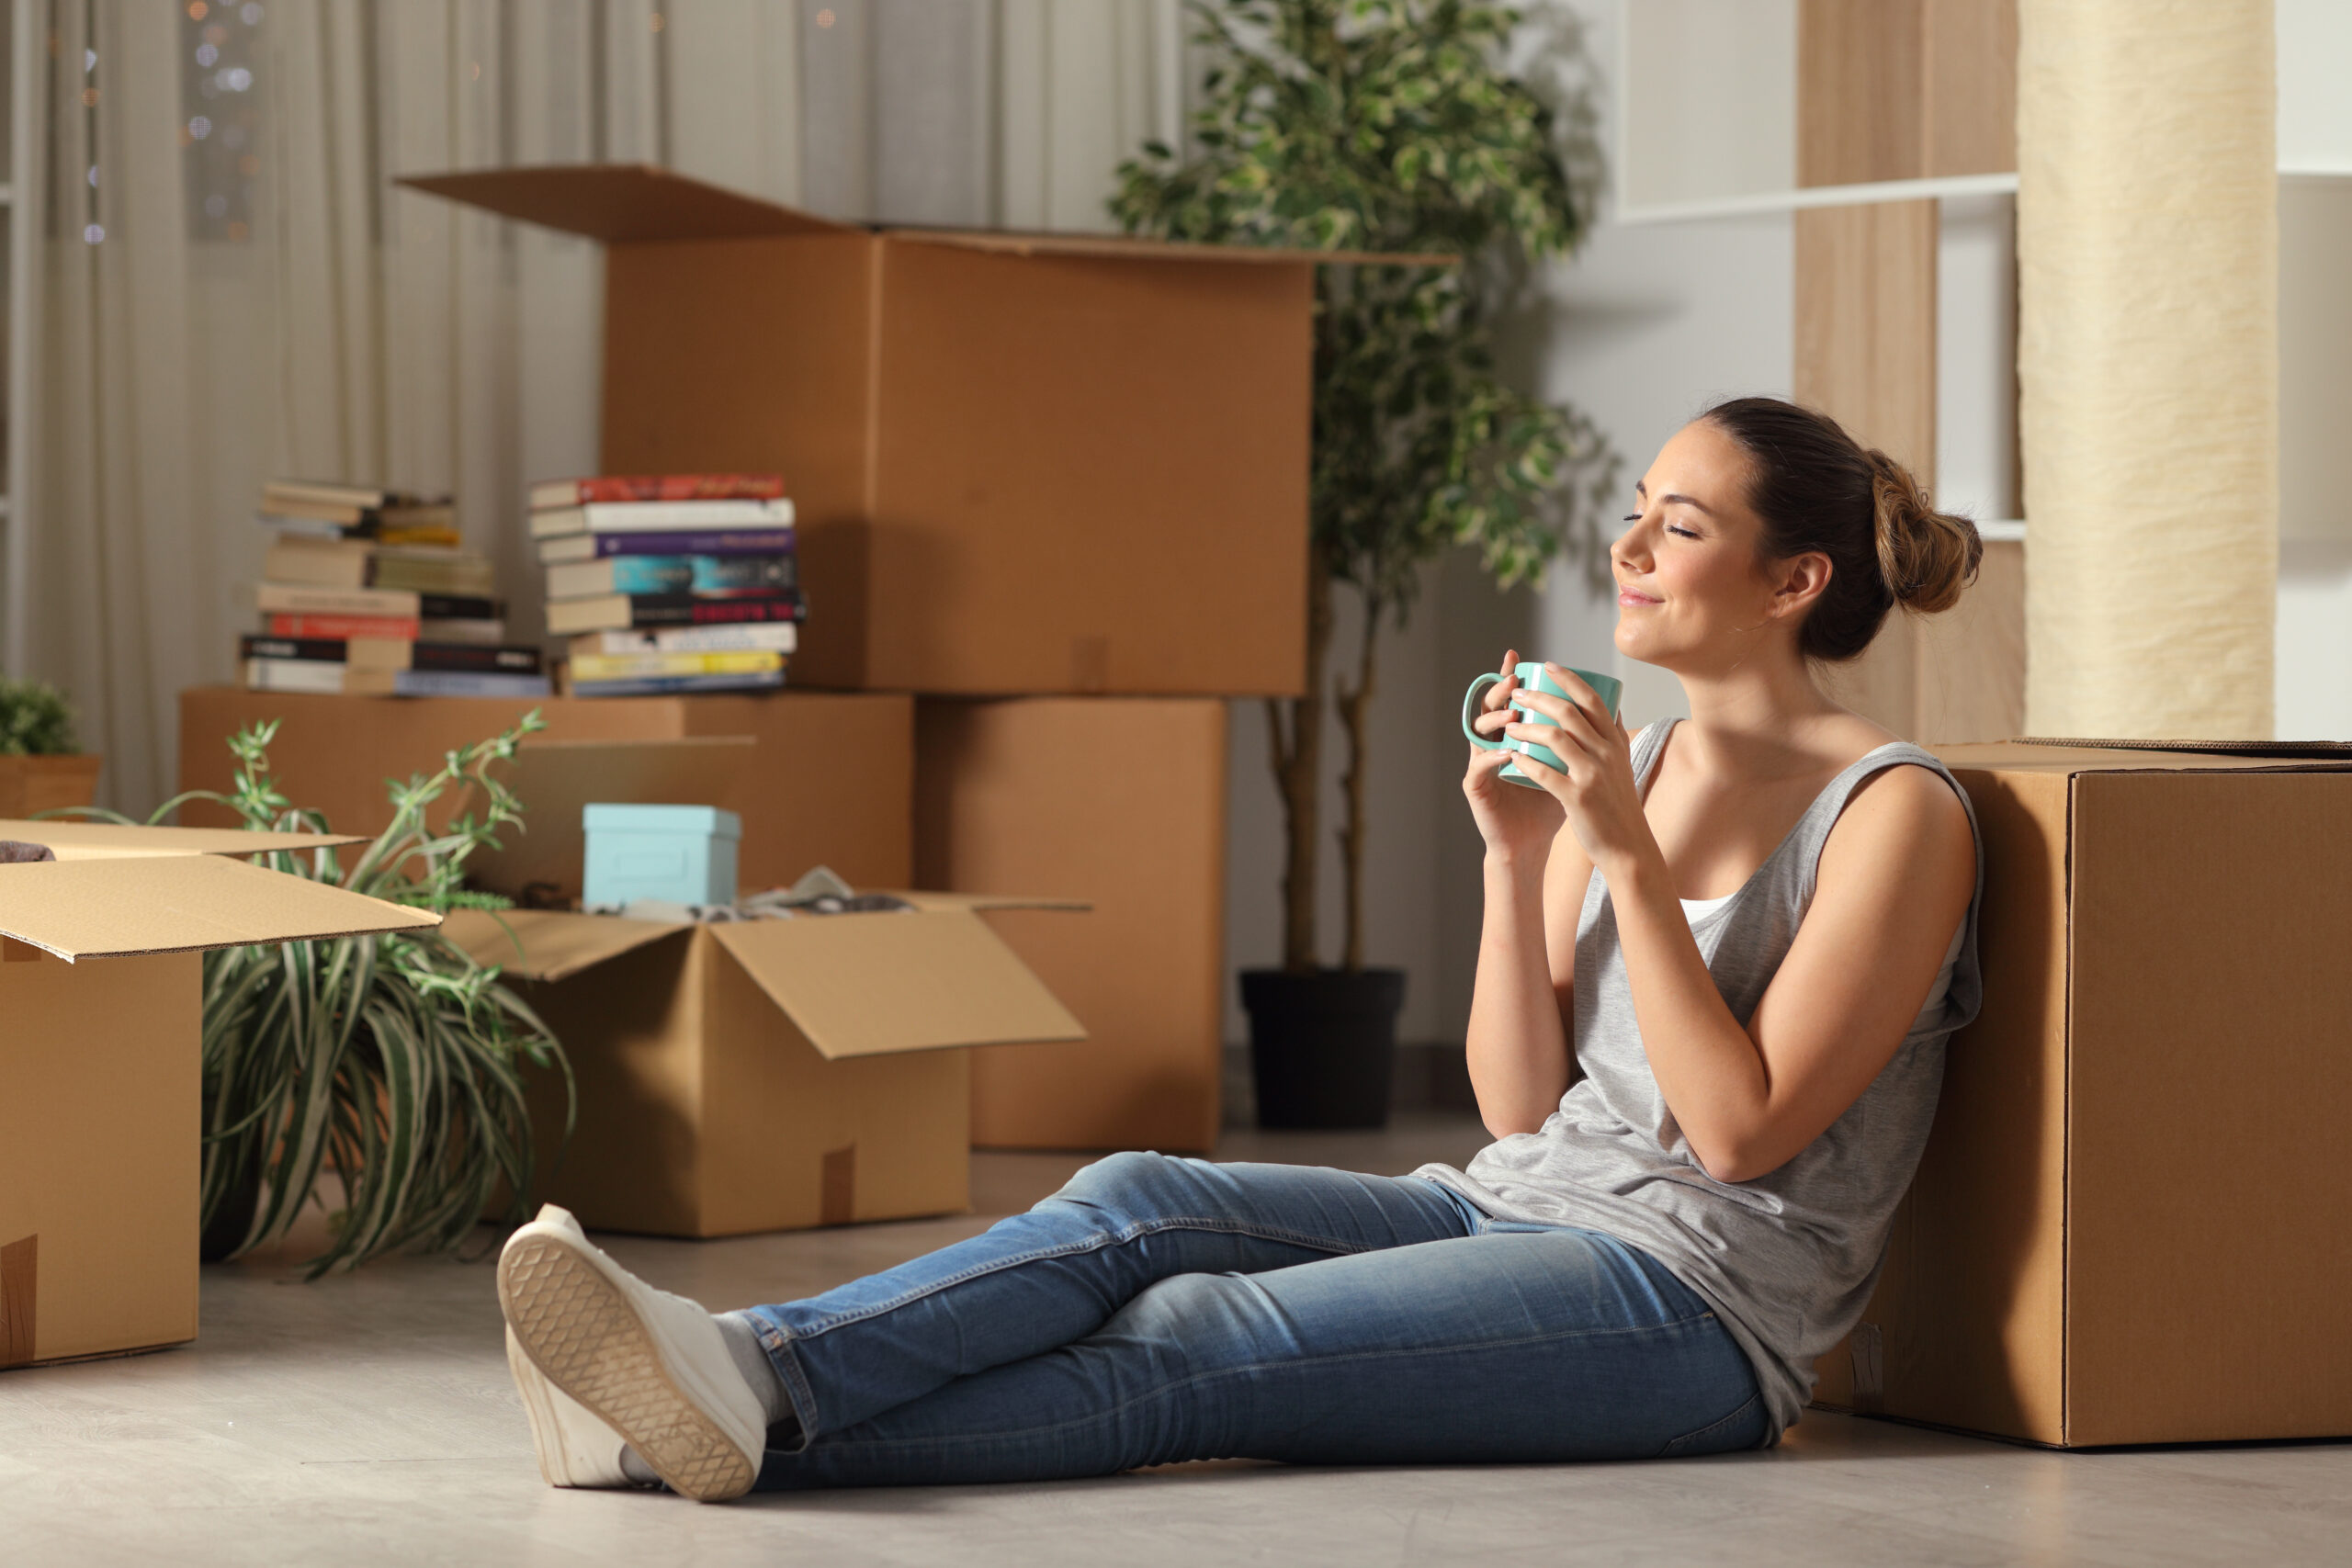 Young woman living in her first apartment